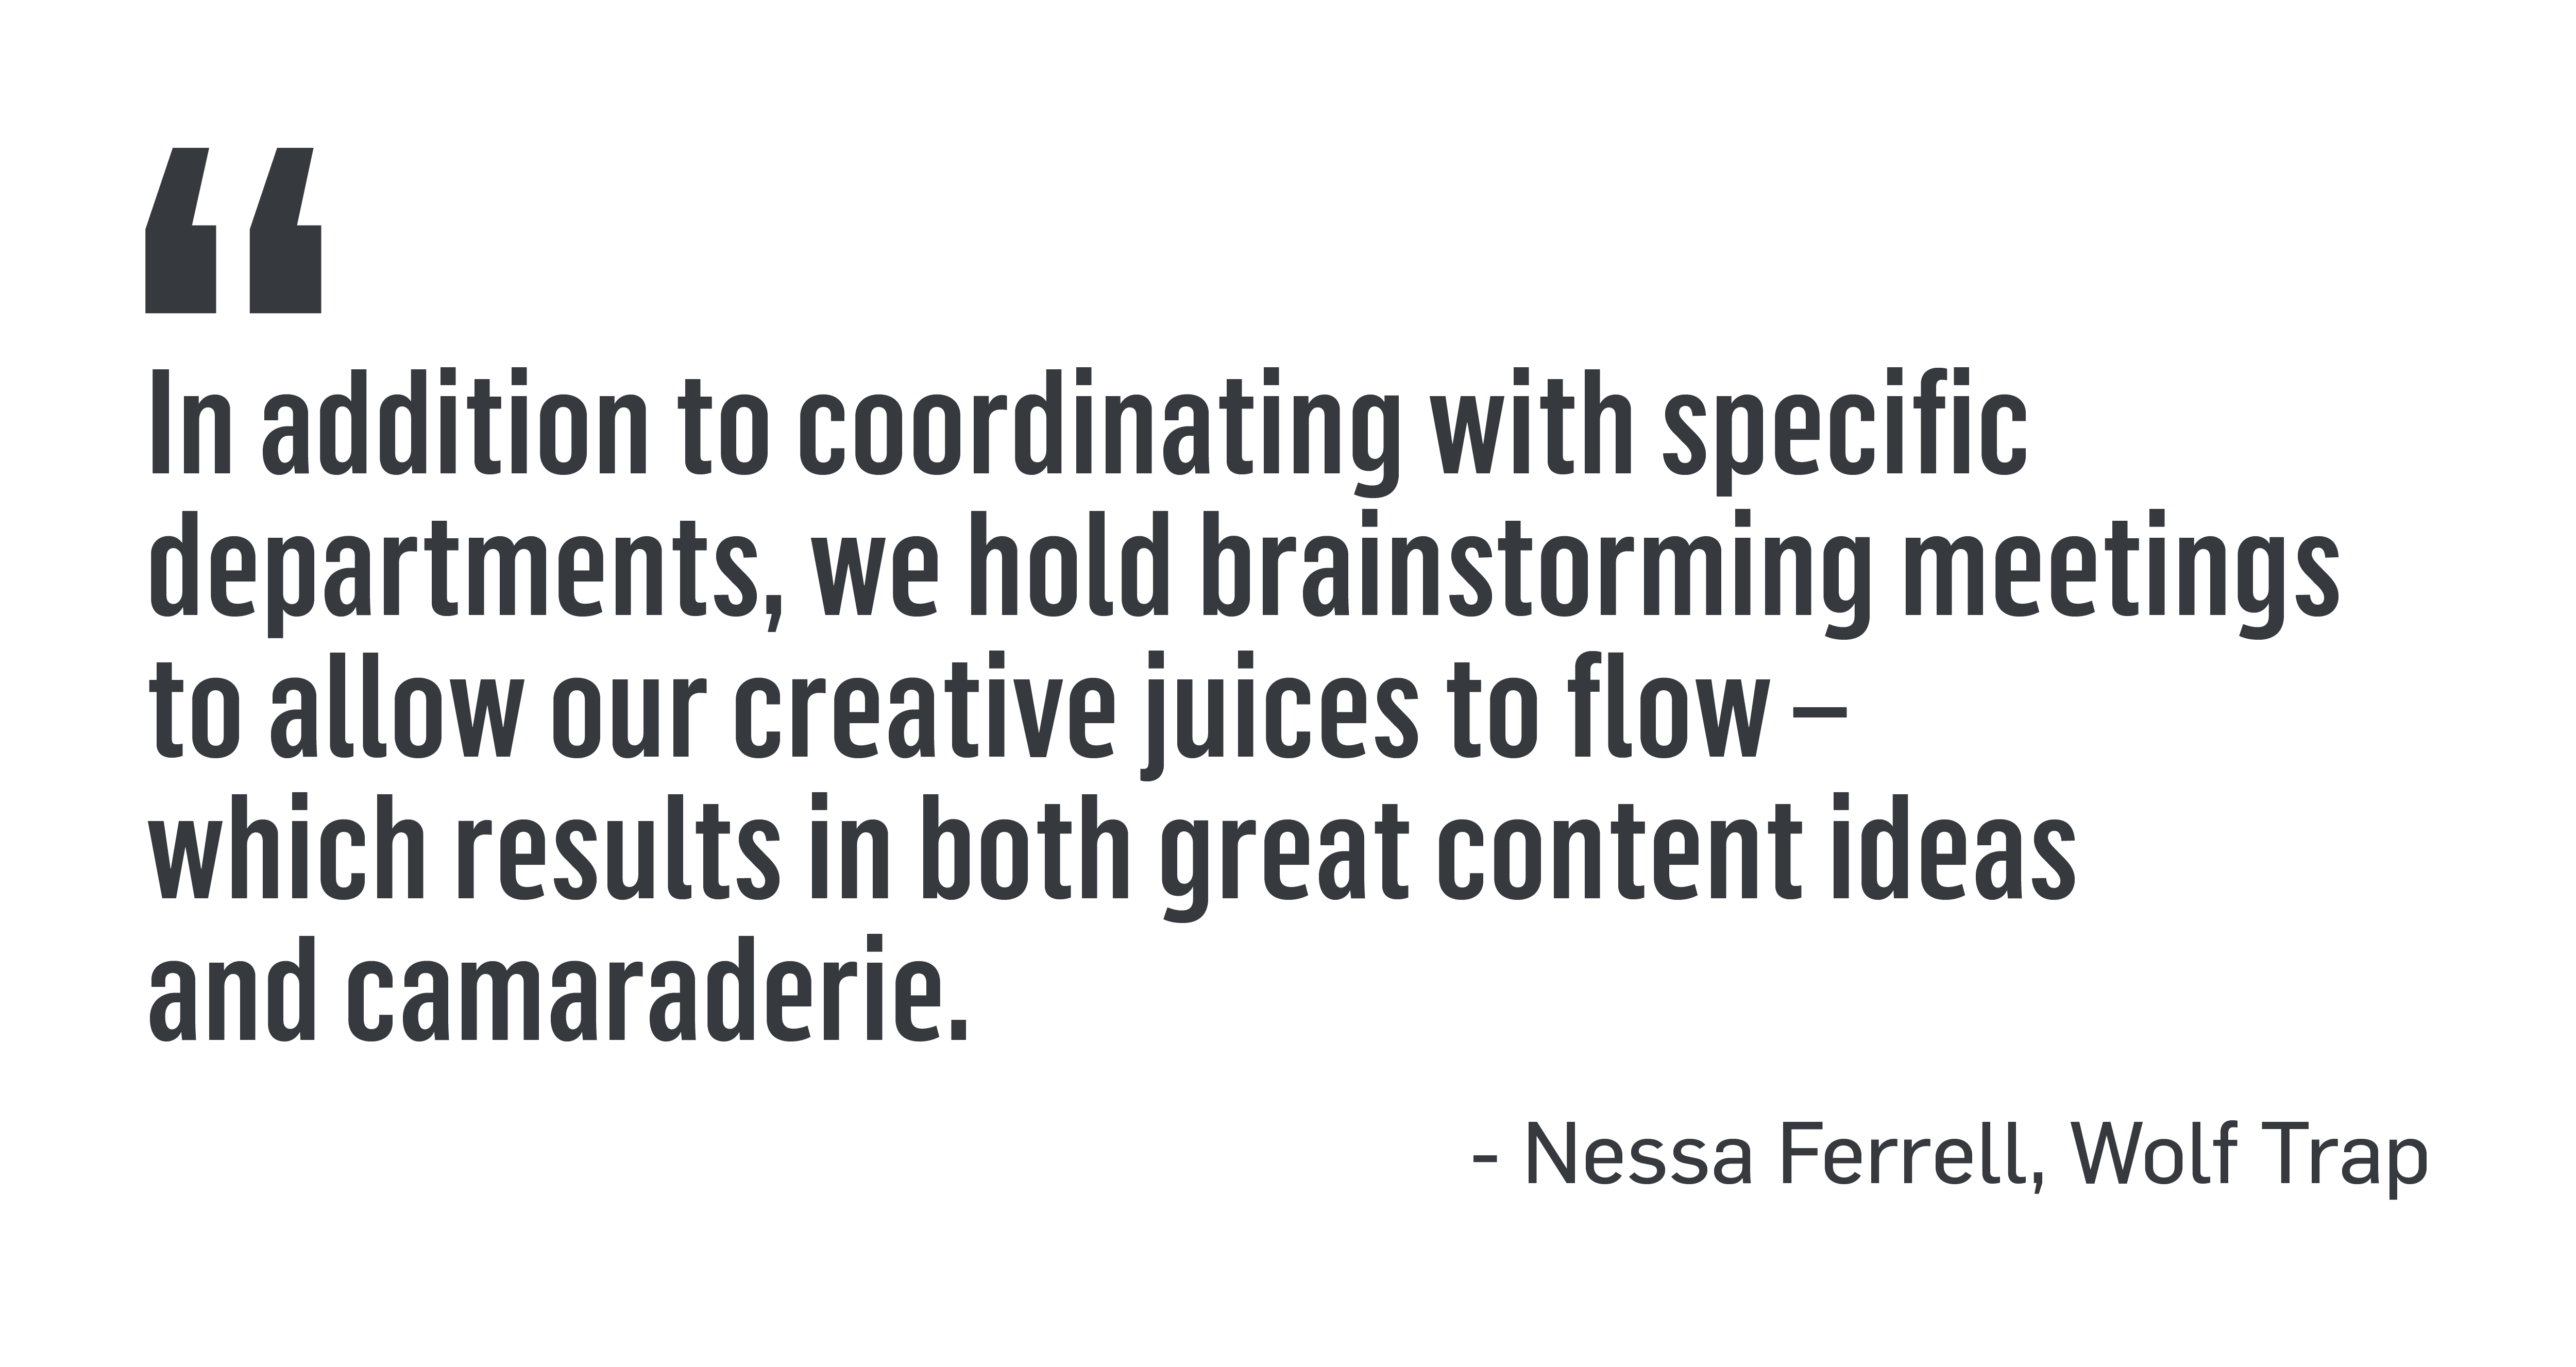 "PULL QUOTE: ""In addition to coordinating with specific departments, we hold brainstorming meetings to allow our creative juices to flow - which results in both great content ideas and camaraderie."" - Nessa Ferrell, Wolf Trap"